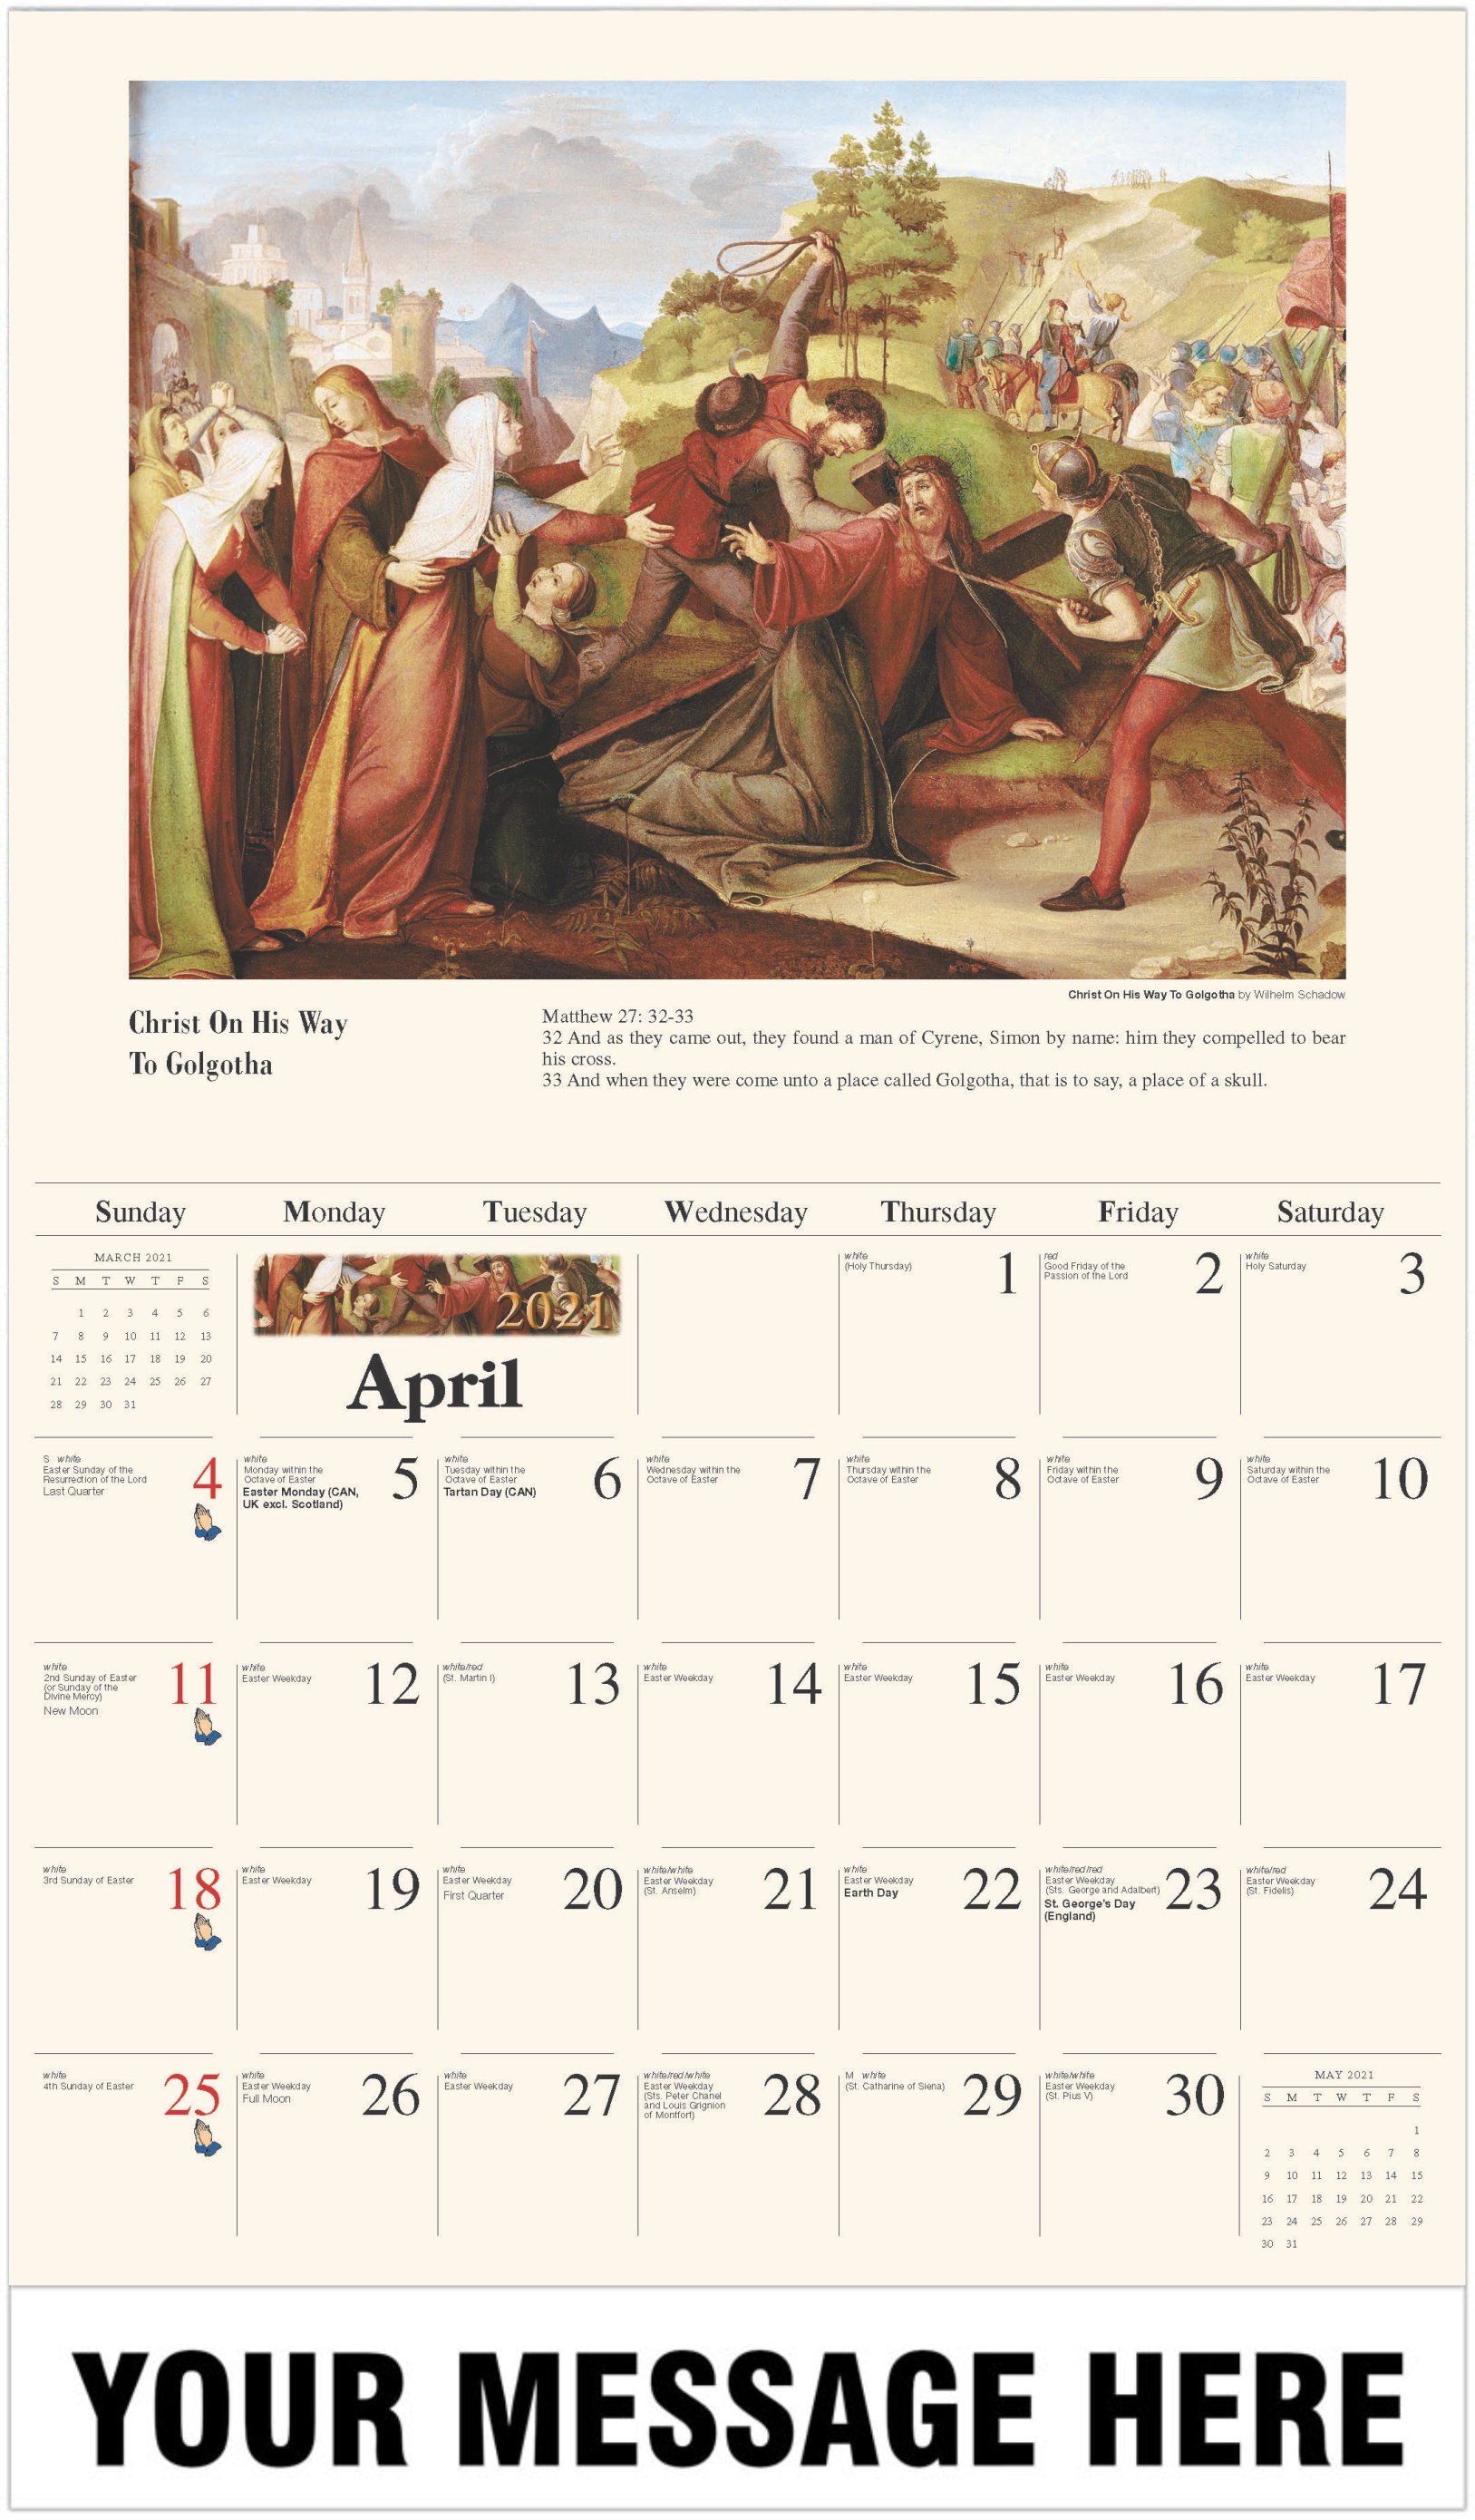 Christ On His Way to Golgotha - April - Catholic Inspiration 2021 Promotional Calendar